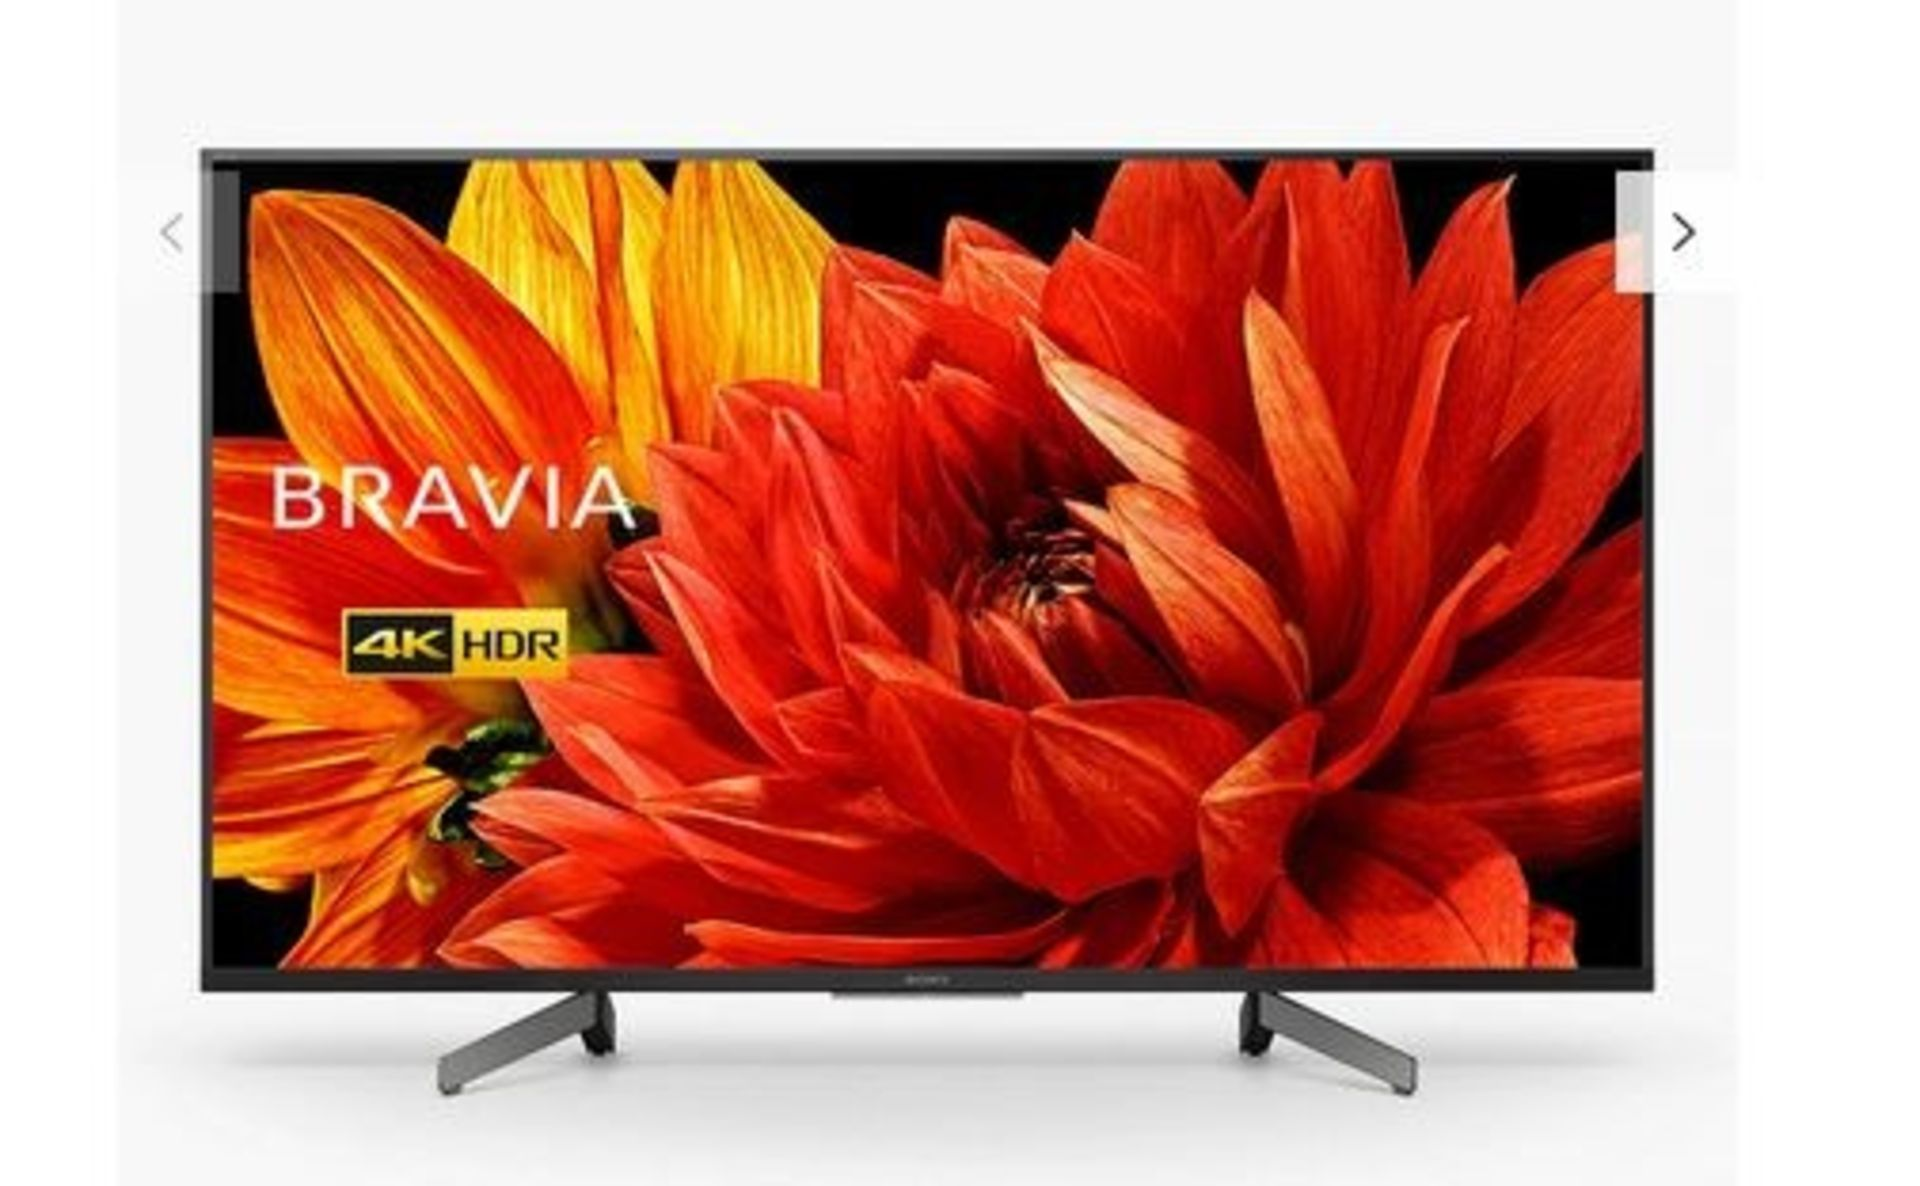 "Lot 1C - 1 BOXED AND TESTED SONY BRAVIA (2019) LED HDR 4K ULTRA HD SMART ANDROID 43"" TV - KD43XG8305 / RRP £"